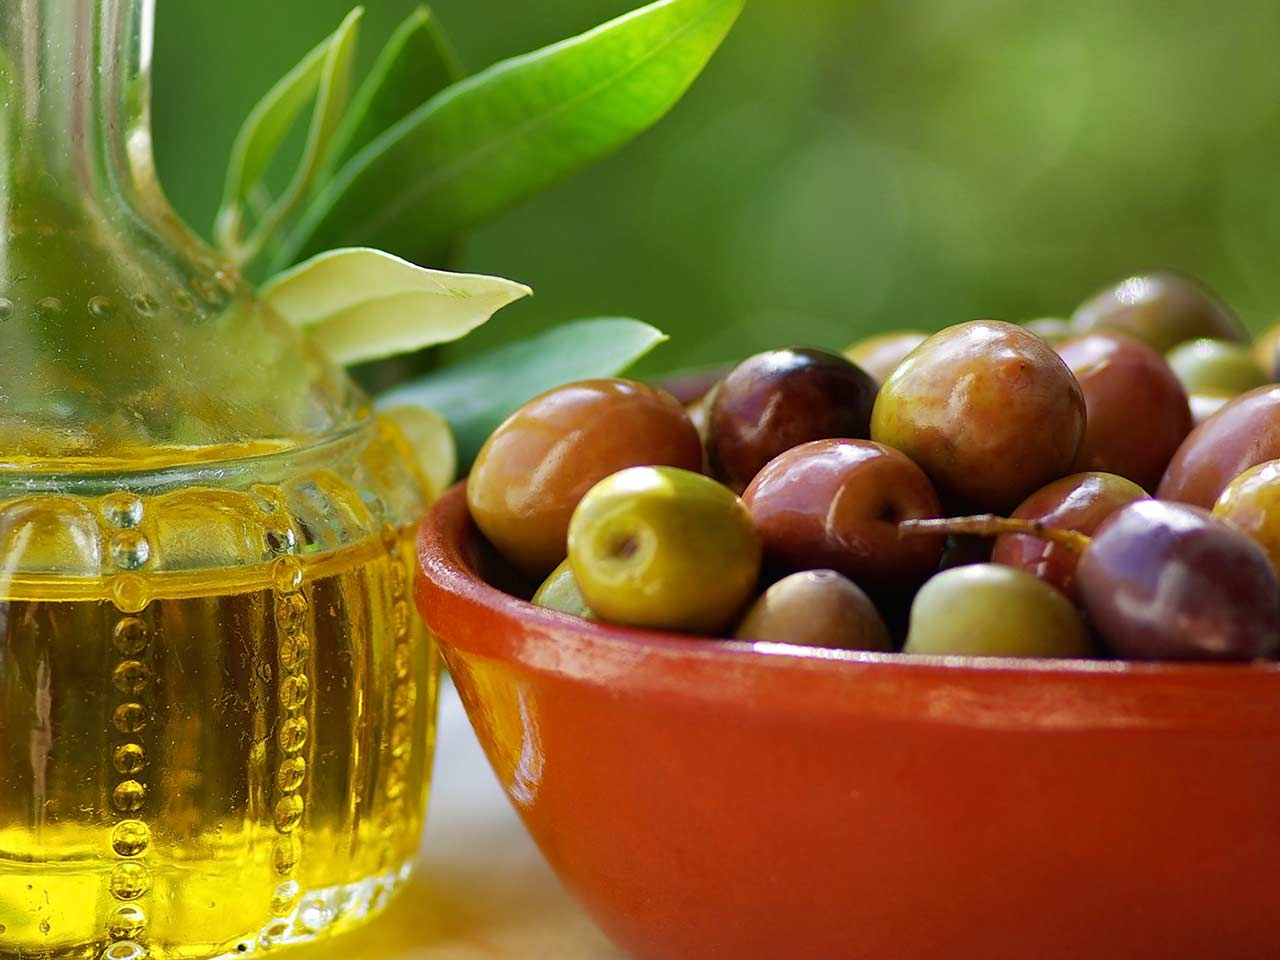 Bowl of olives and a bottle of olive oil